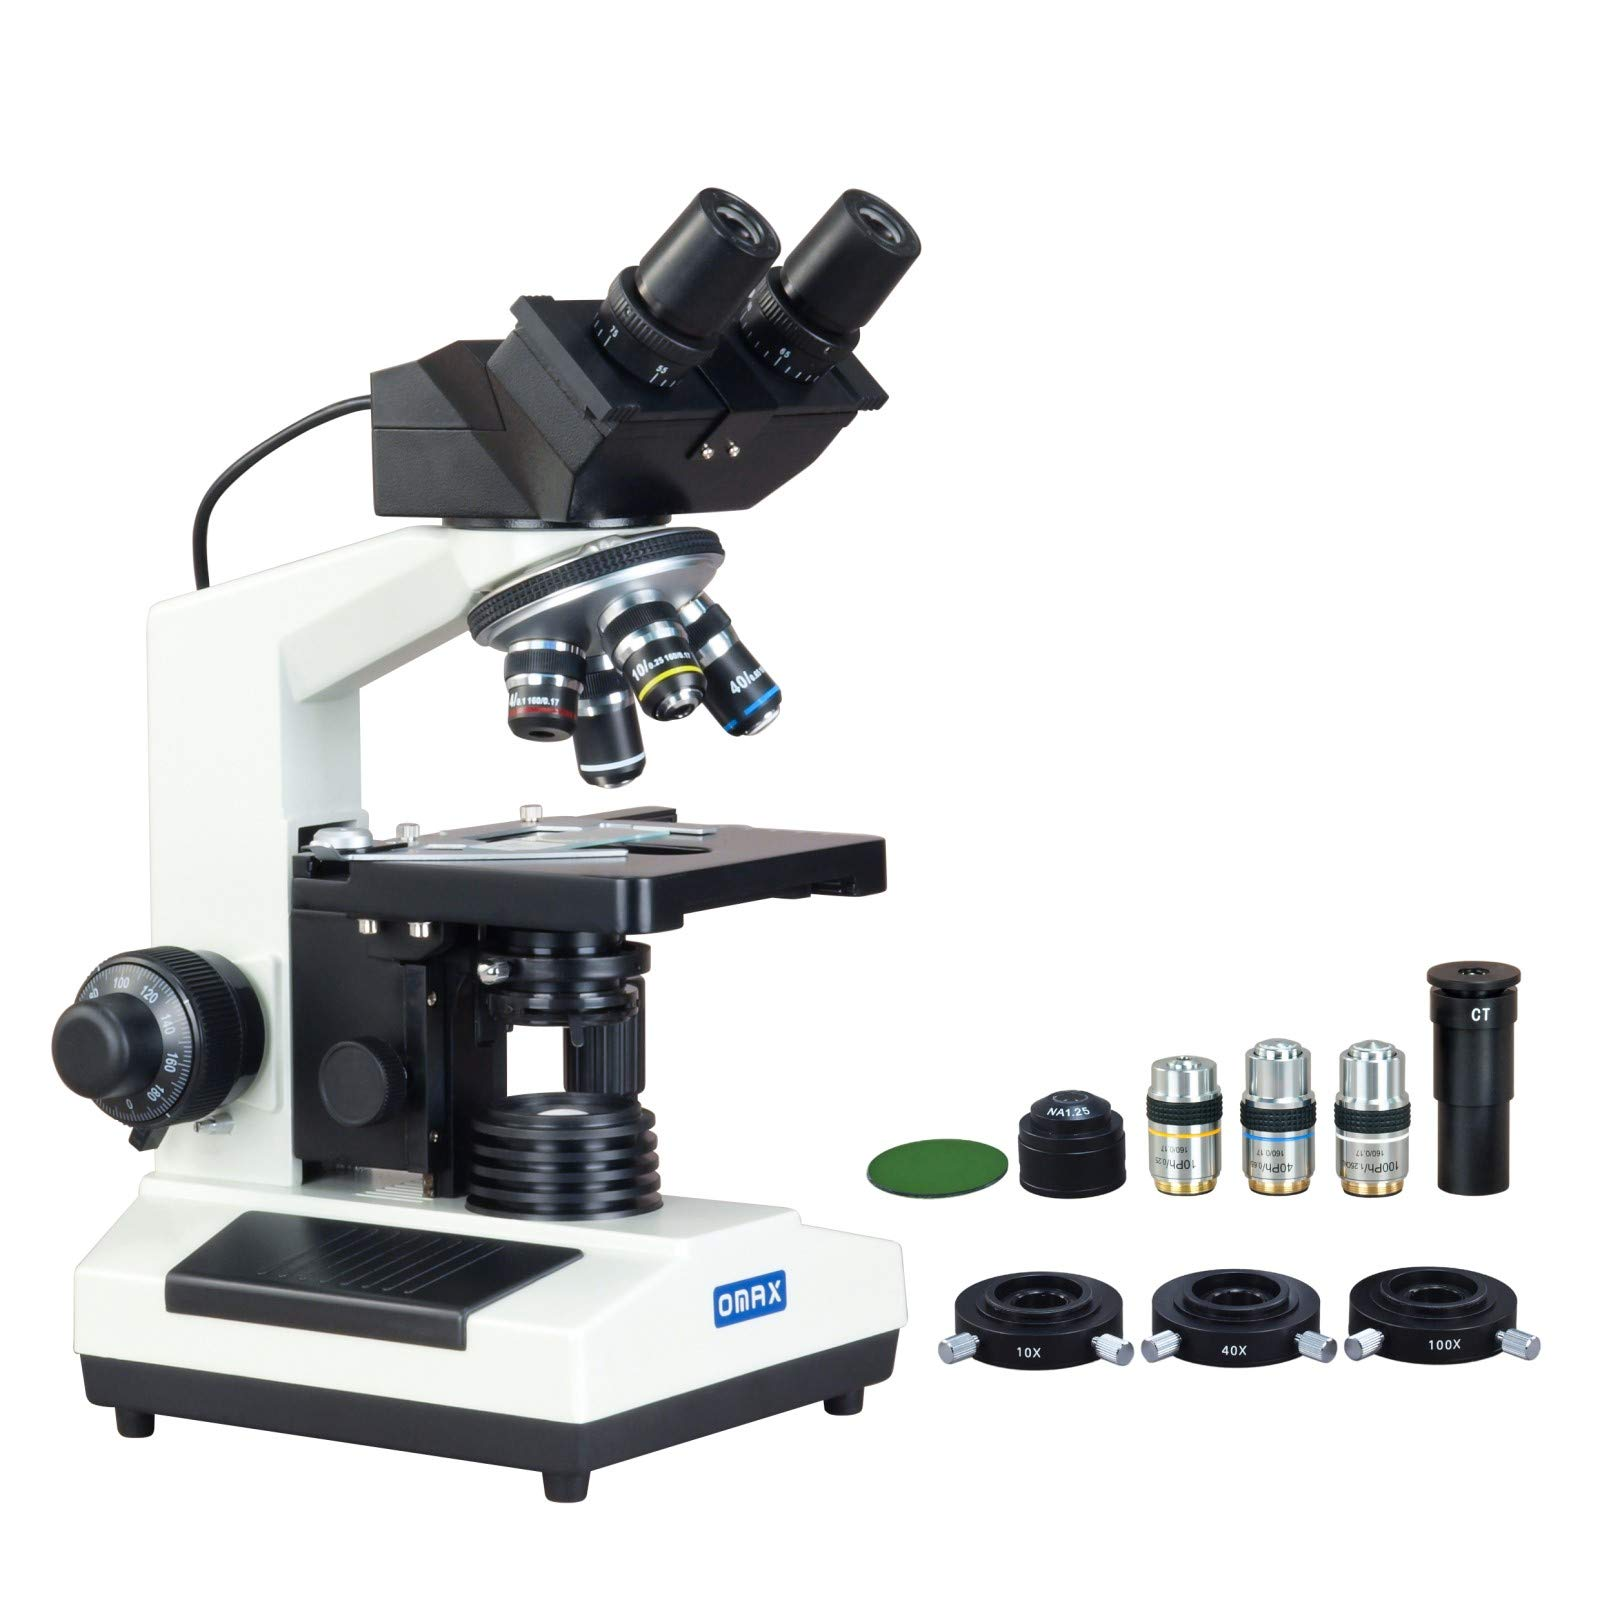 OMAX 40X-2000X Digital Binocular Phase Contrast Compound Microscope with Built-in 3.0MP USB and Interchangable Phase Contrast Kit by OMAX